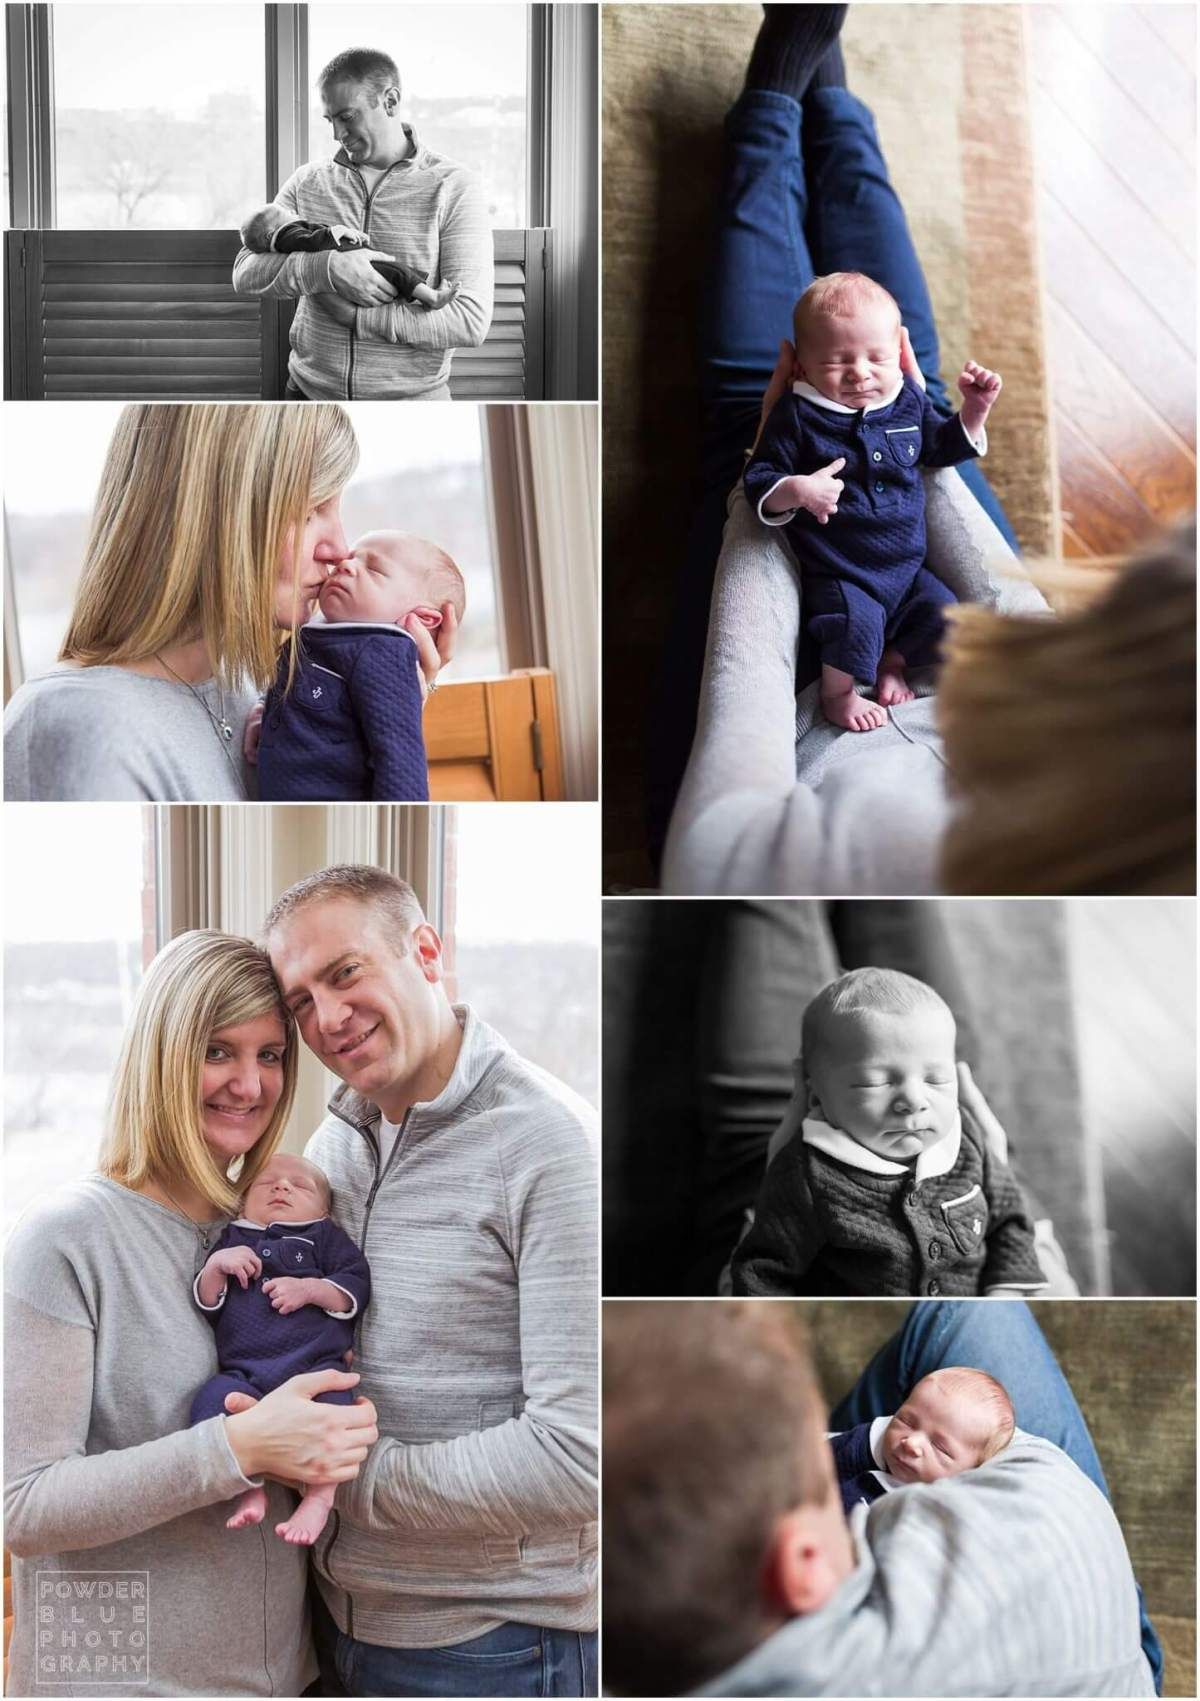 pittsburgh newborn photography session in home. baby boy born in pittsburgh, Sports nursery theme.